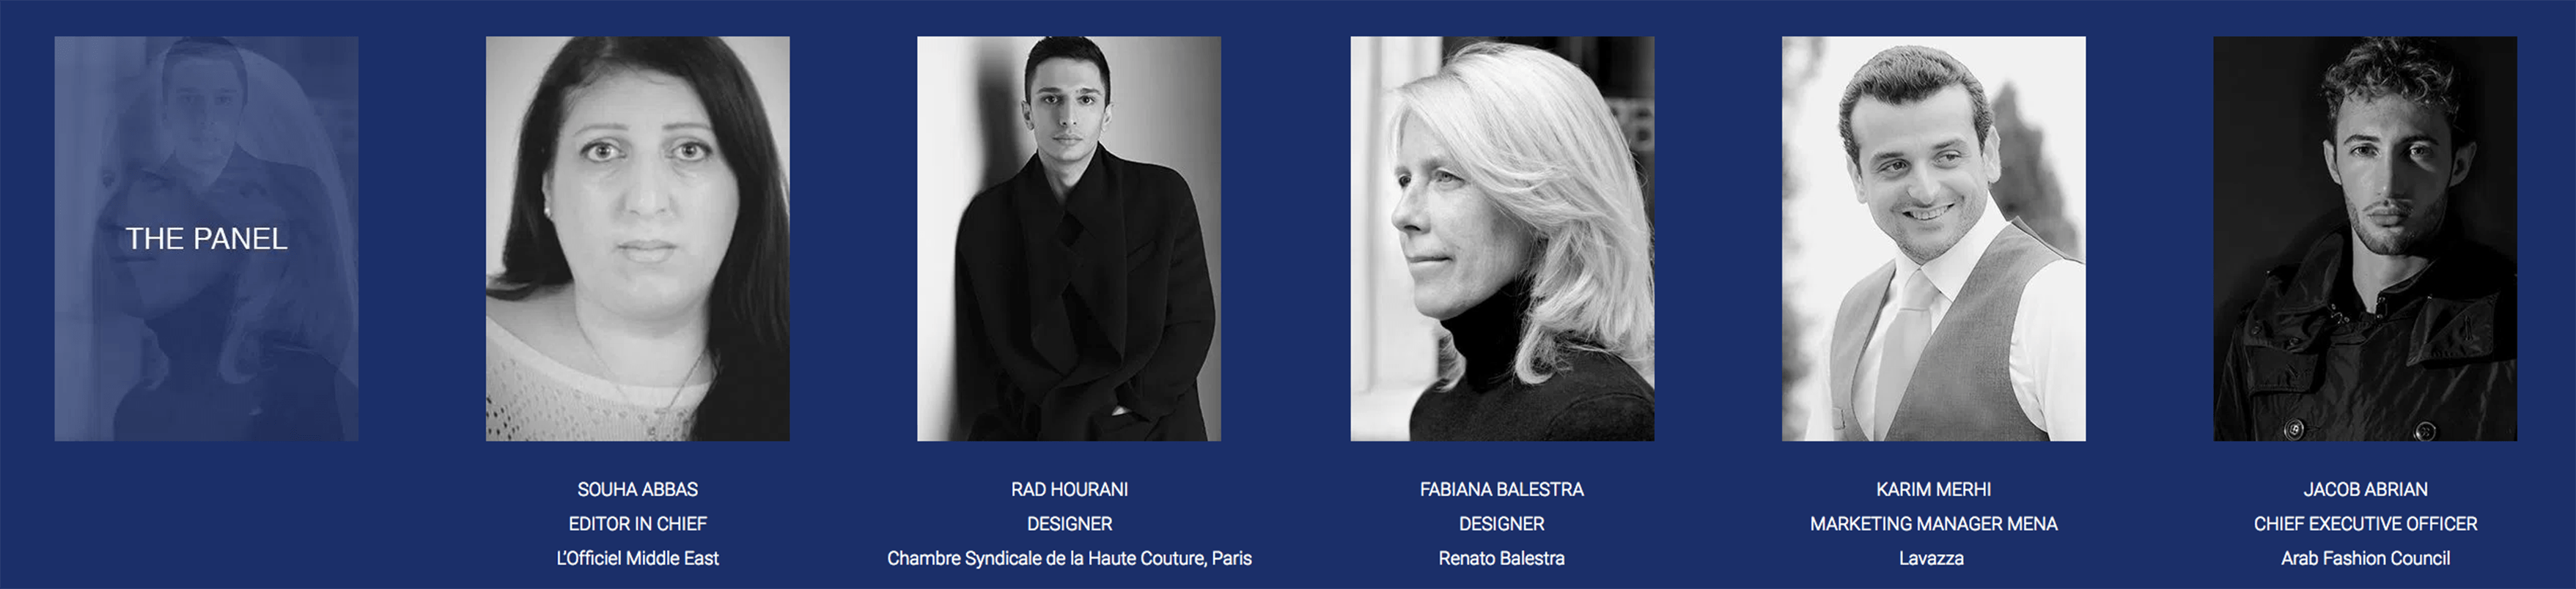 Judges-Lavazza Design Competition